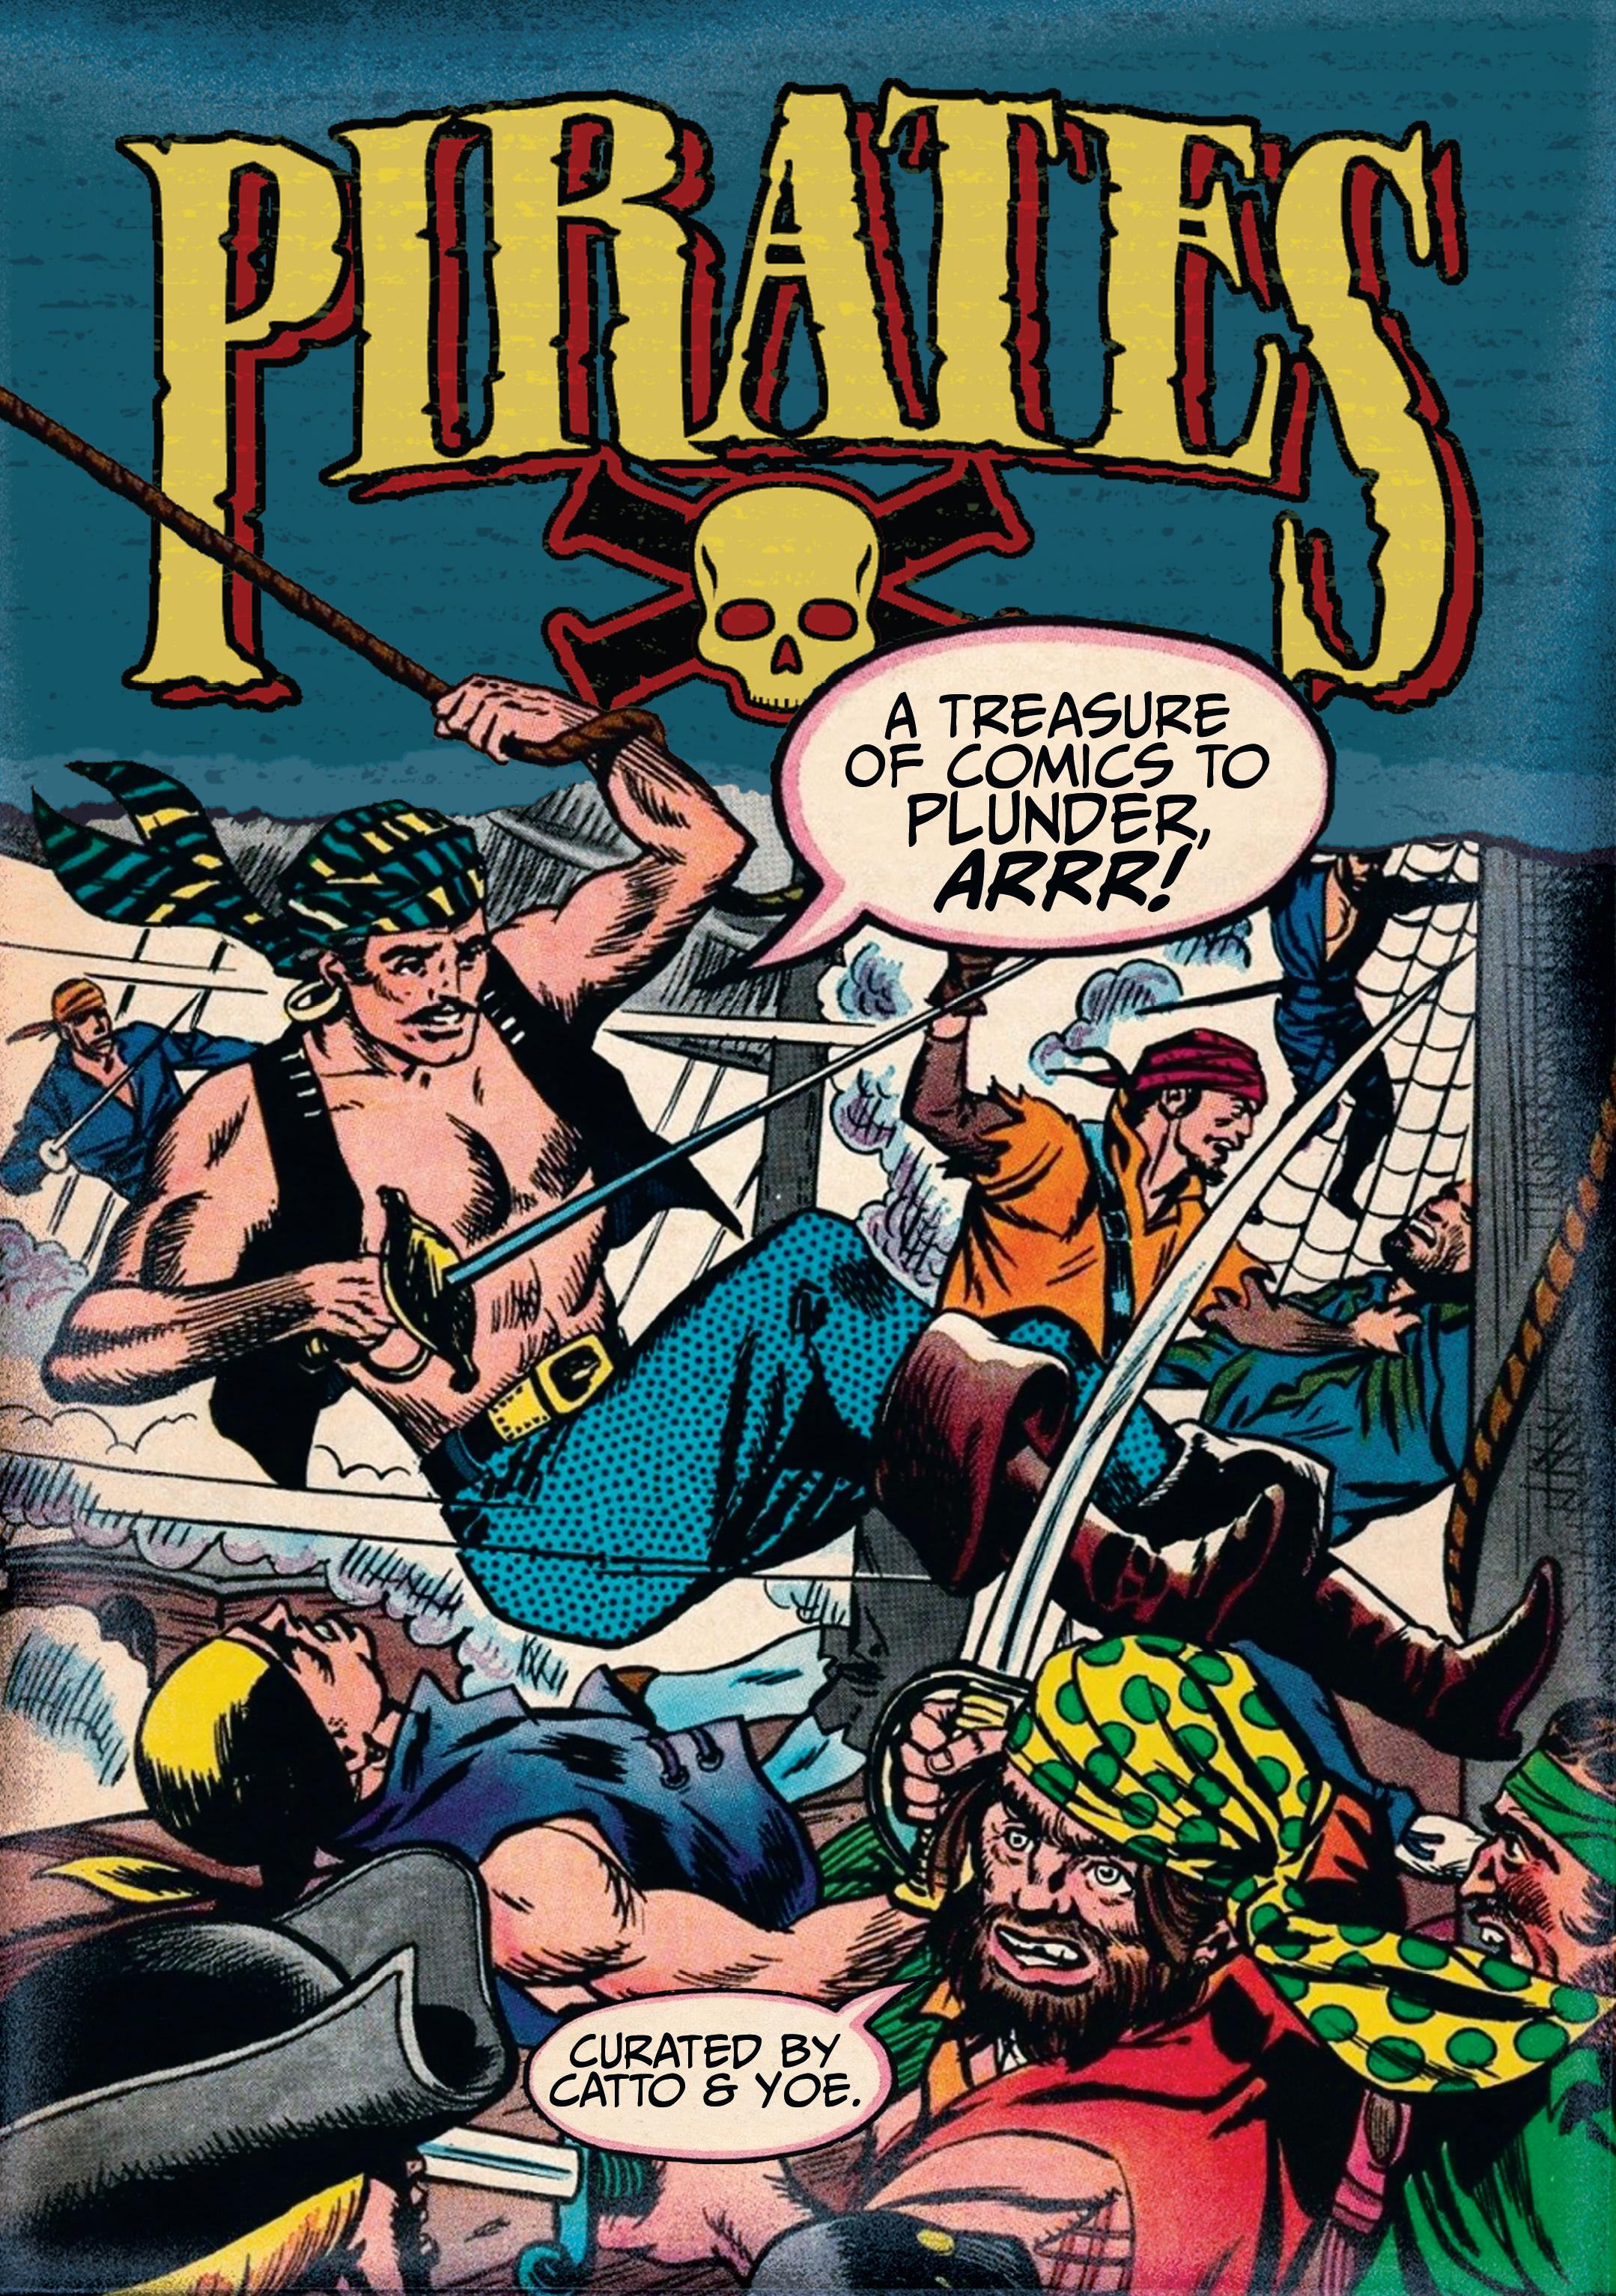 Pirates-A Treasure of Comics to Plunder, Arrr! 2020 Digital Bean